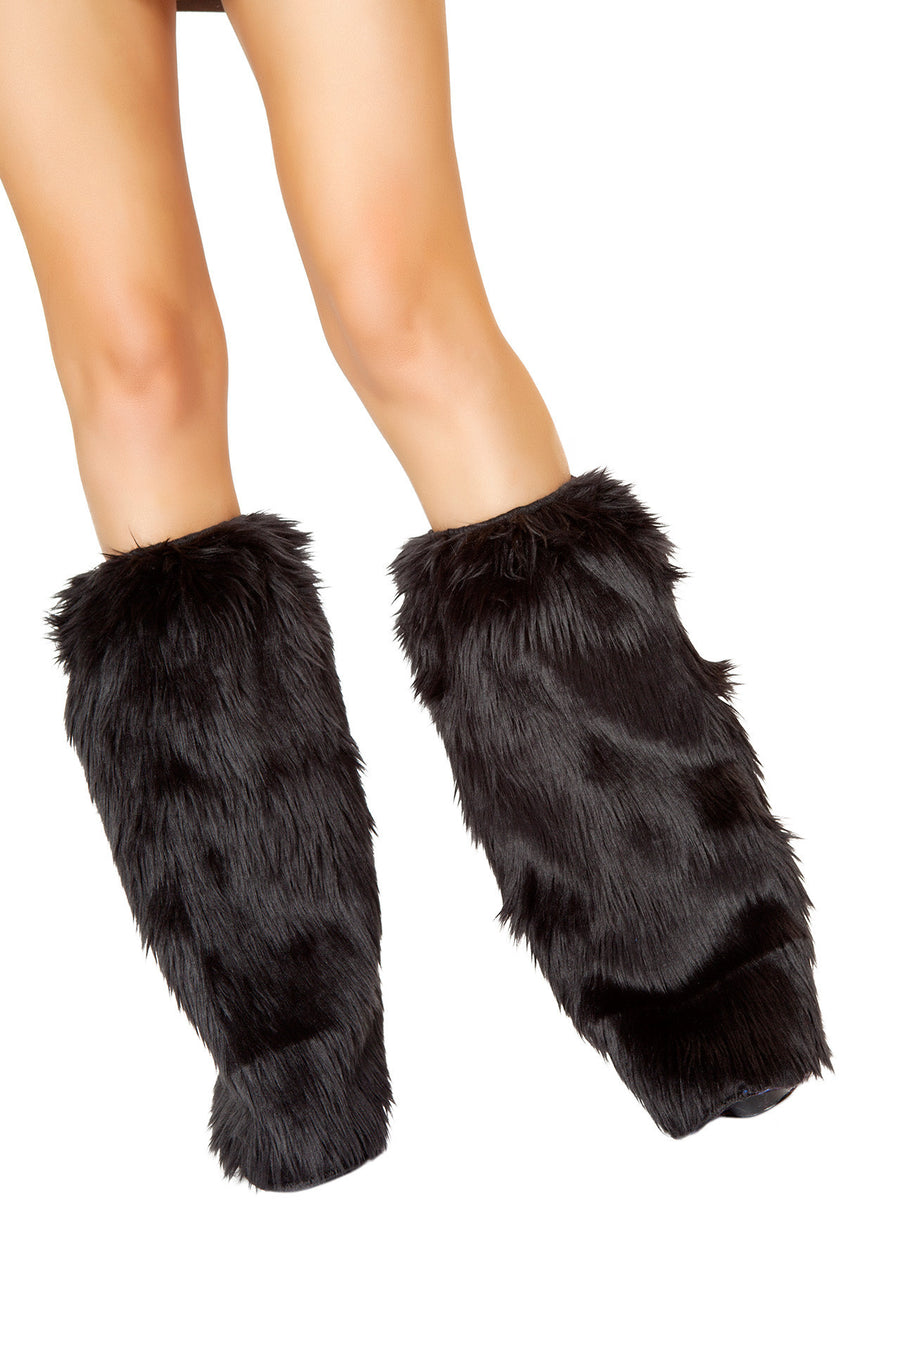 8003 Original Faux Fur Leg Warmers